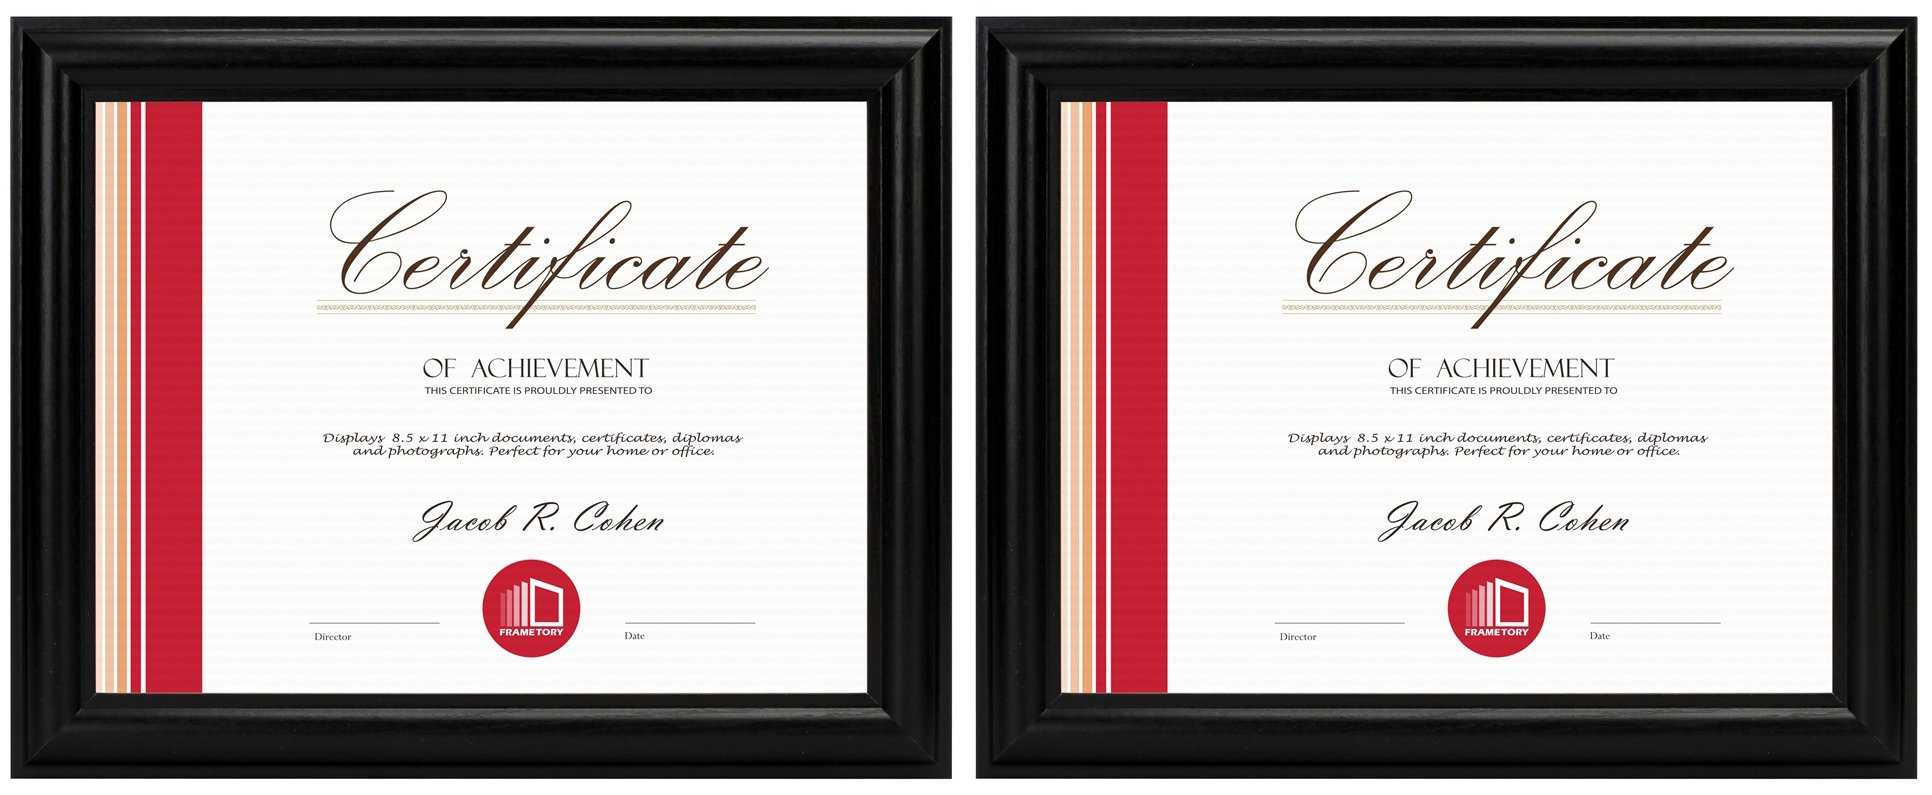 Frametory, Two 8.5x11 Black Frame Set - Curved Bevel Design - Made to Display 8.5x11 Certificate or Picture (2, Black, 8.5x11)